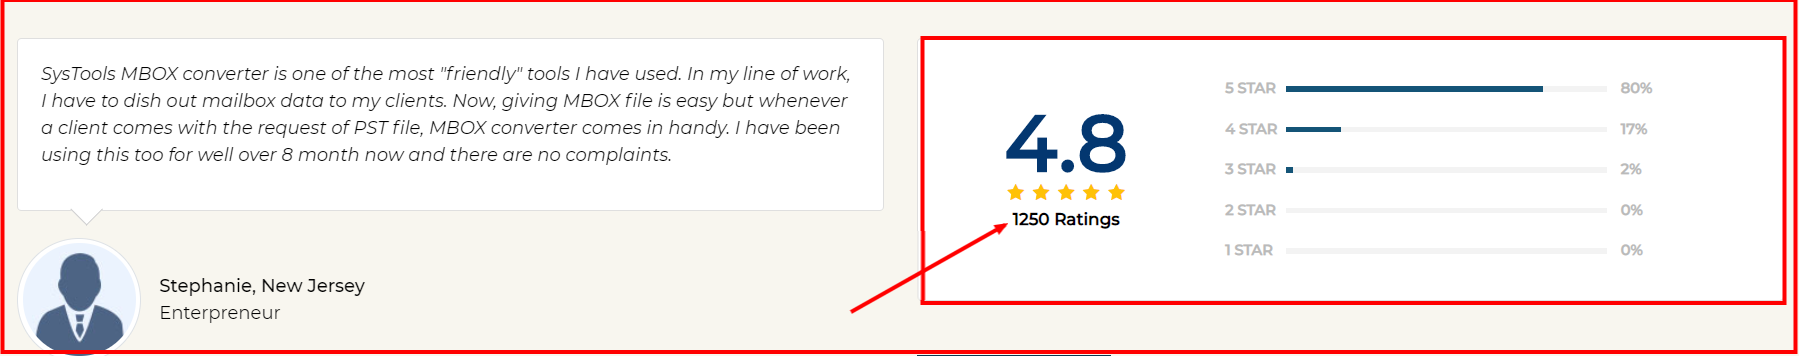 MBOX Converter Customer Review